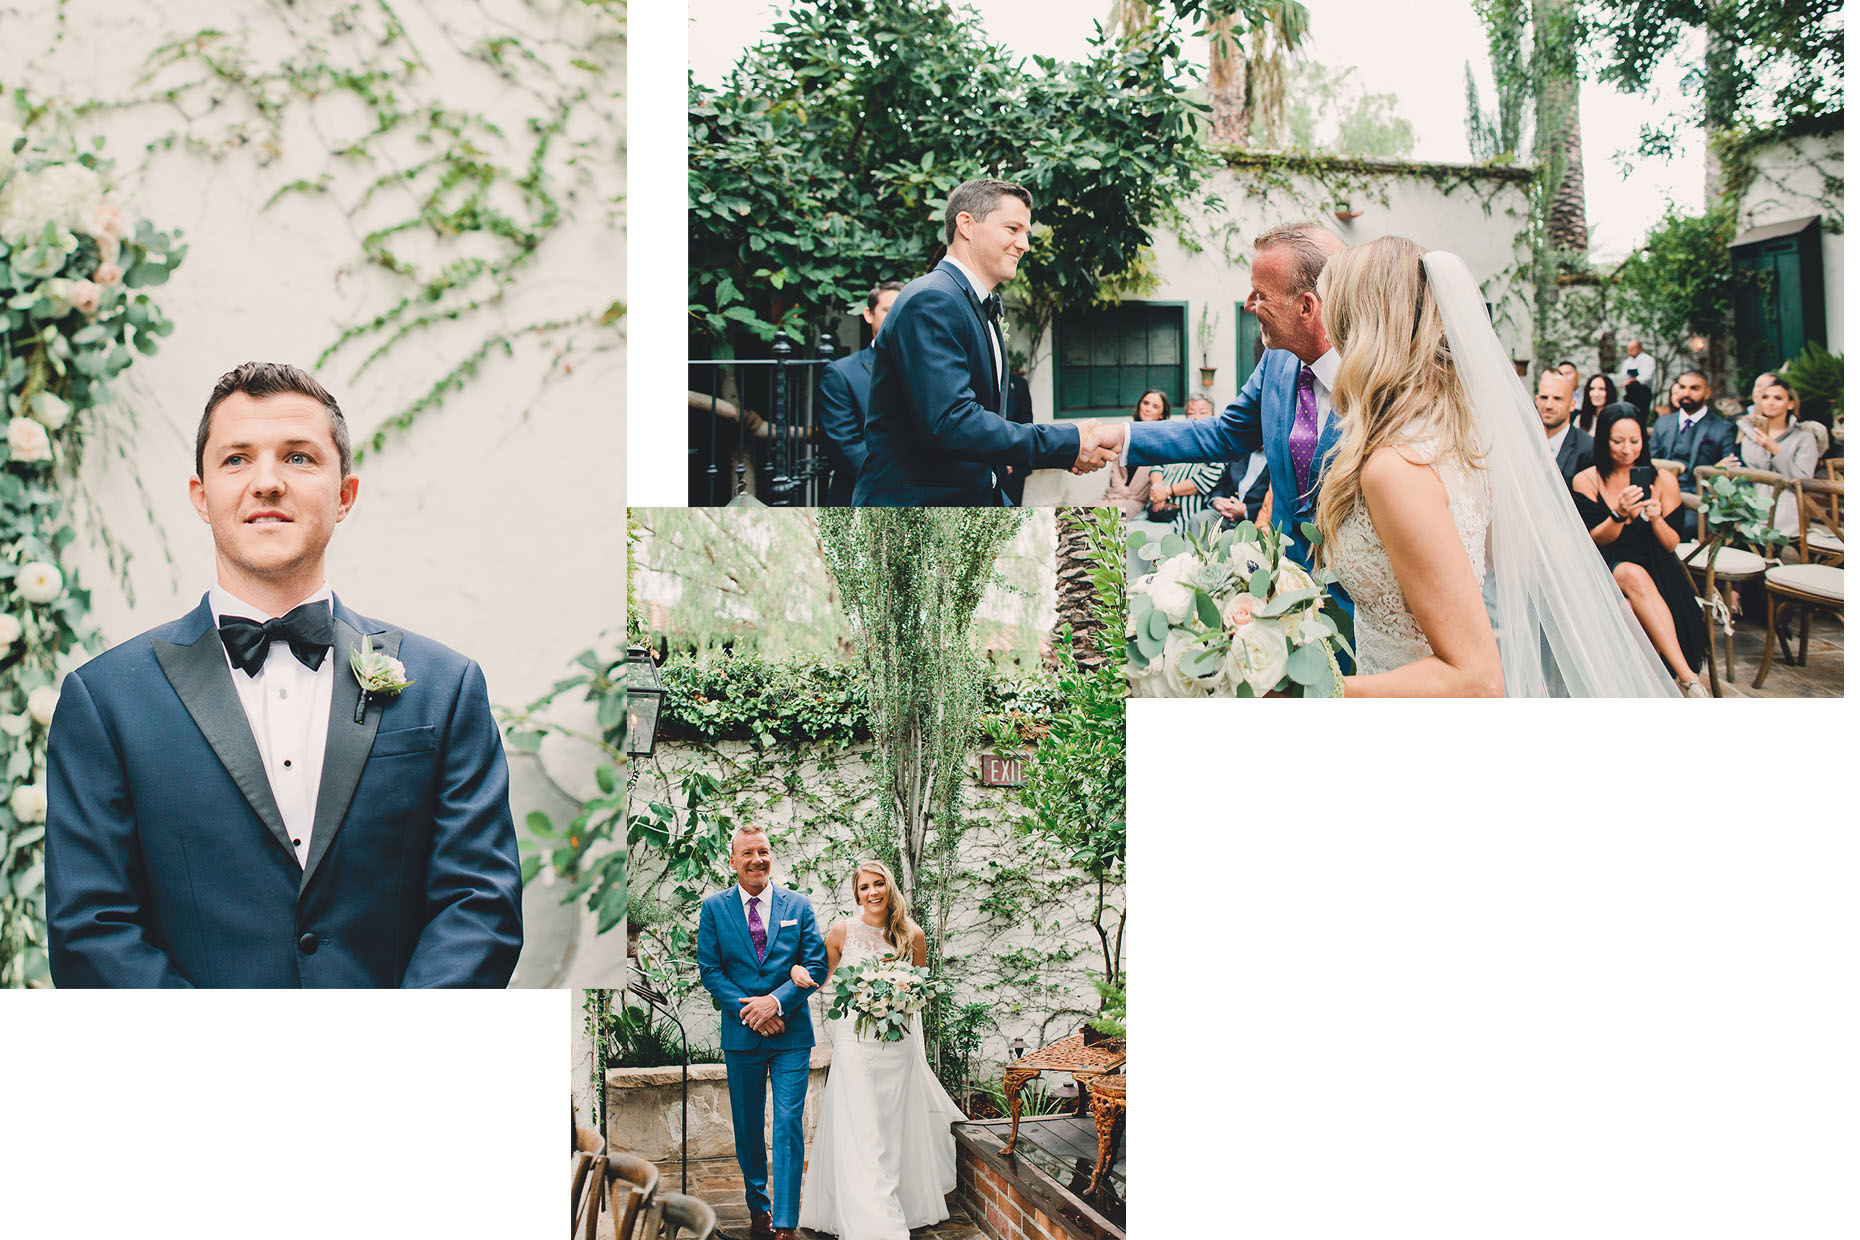 weddingphotographerforthevillasanjuancapistranocreativetopratedrusticmodernweddingphotog1